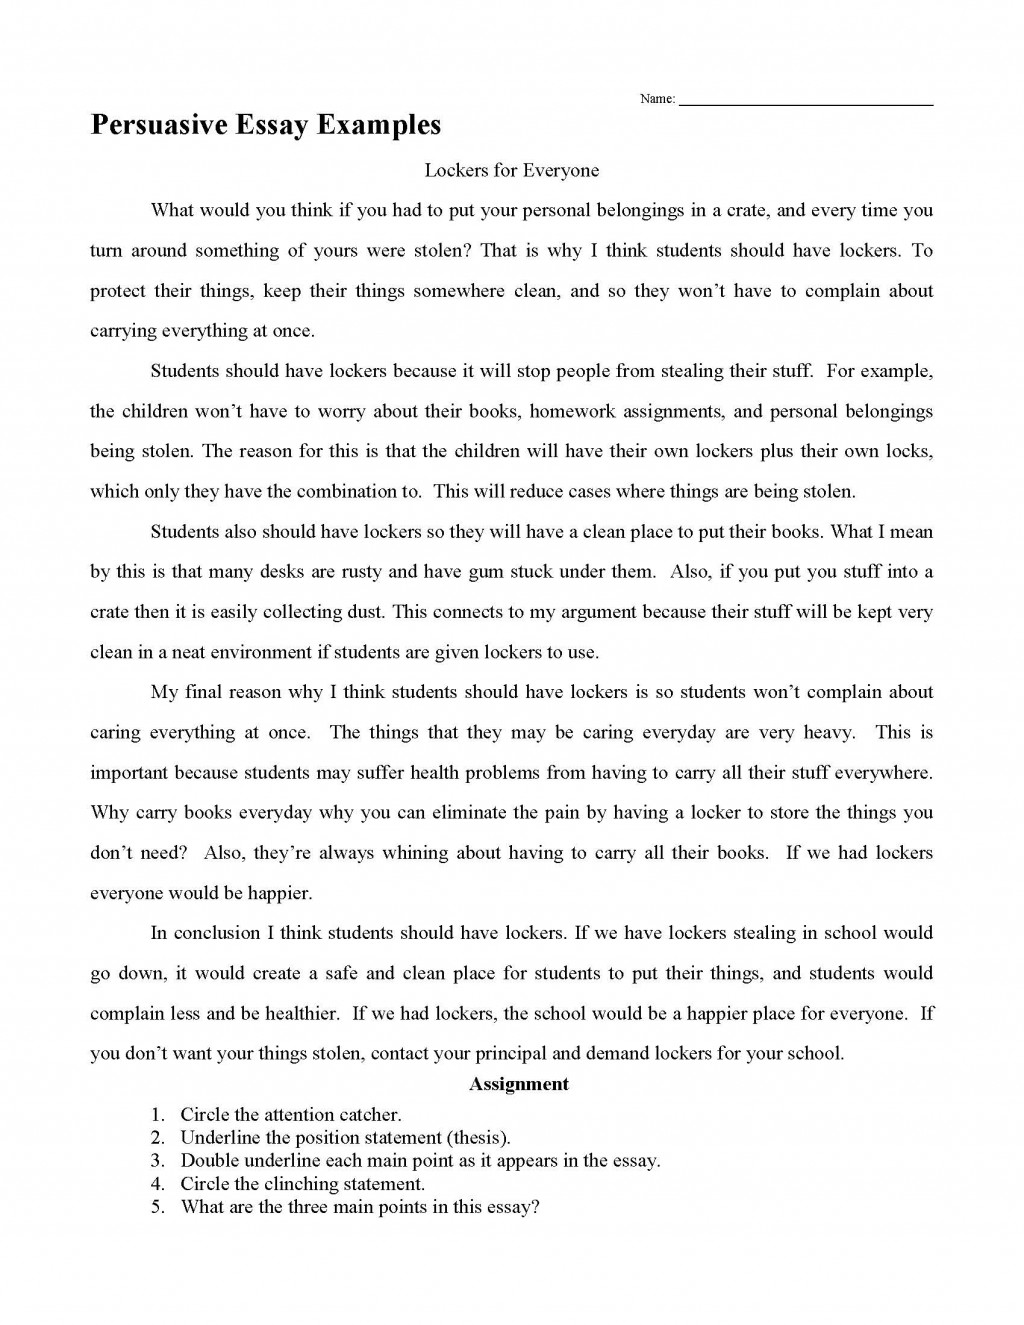 020 Persuasive Essay Examples Research Paper Healthcare Argumentative Stunning Topics Large